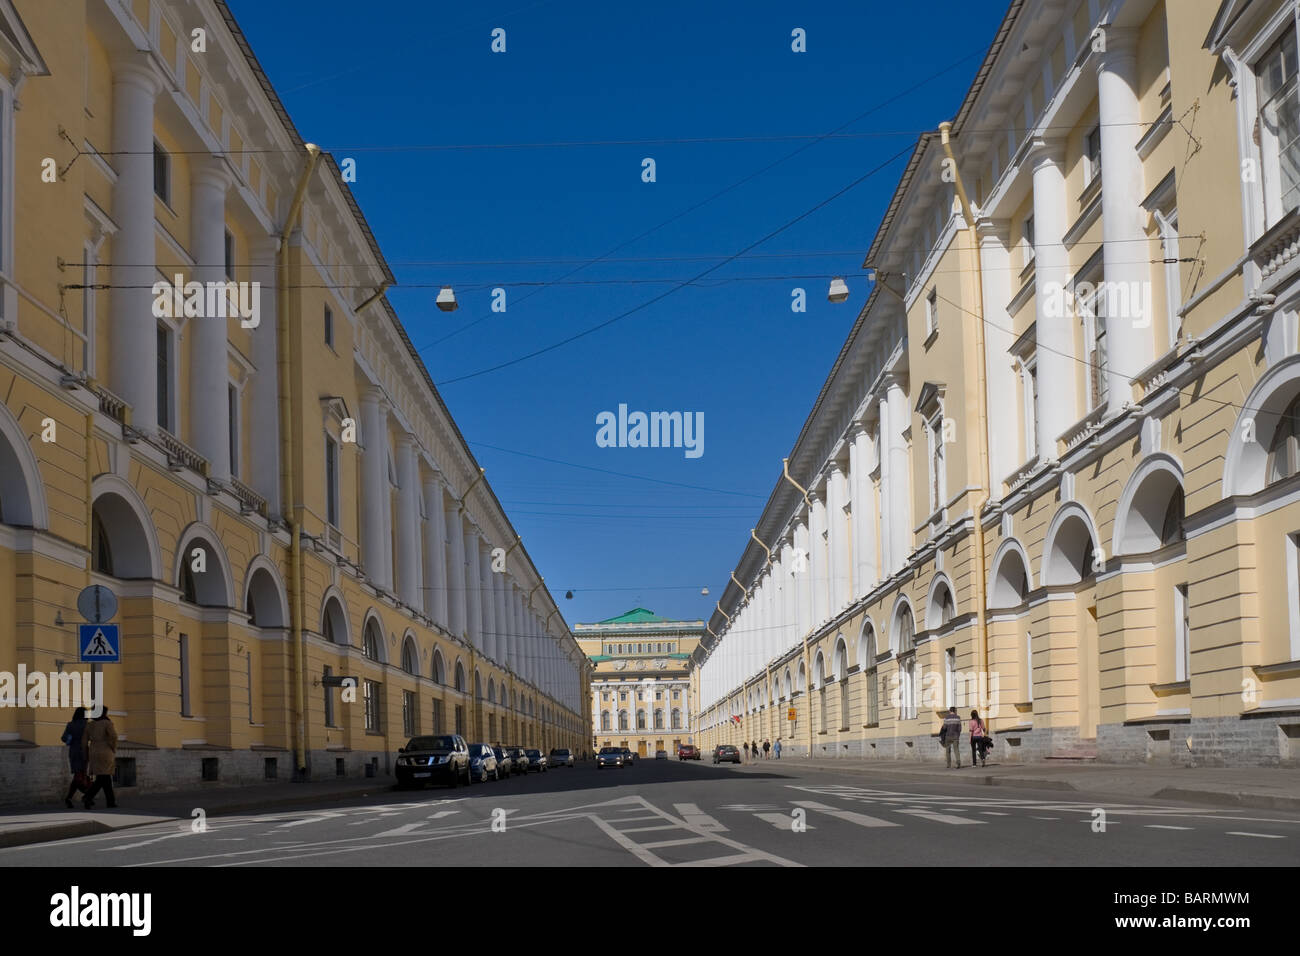 Rossi street St Petersburg Russia The building of Alexandrinsky theater and Ballet school named by Vaganova - Stock Image